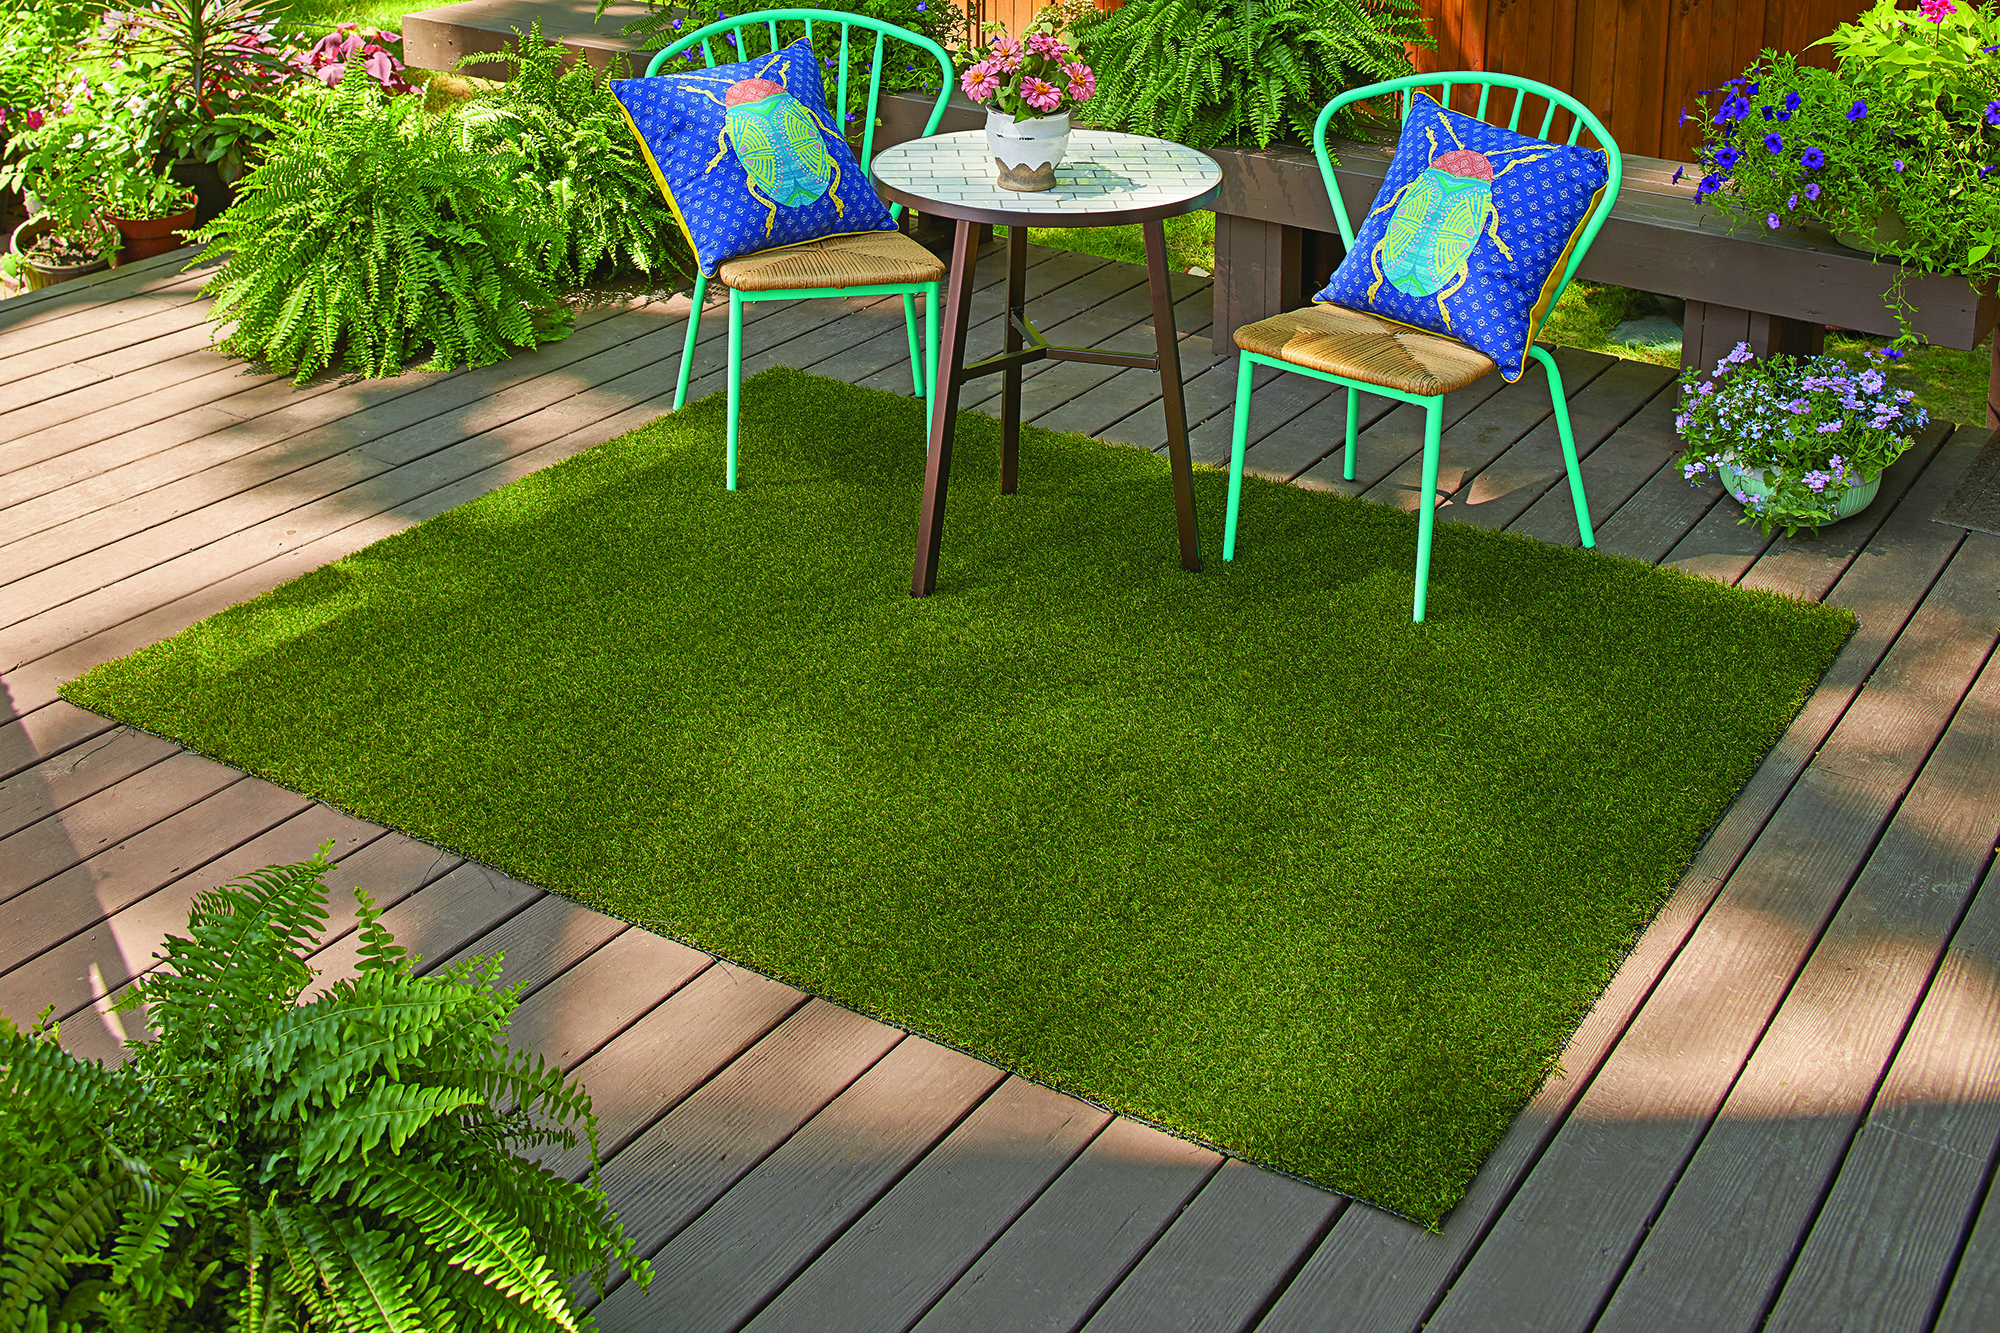 Better Homes And Gardens Outdoor 36in. X 60in. Faux Grass Rug